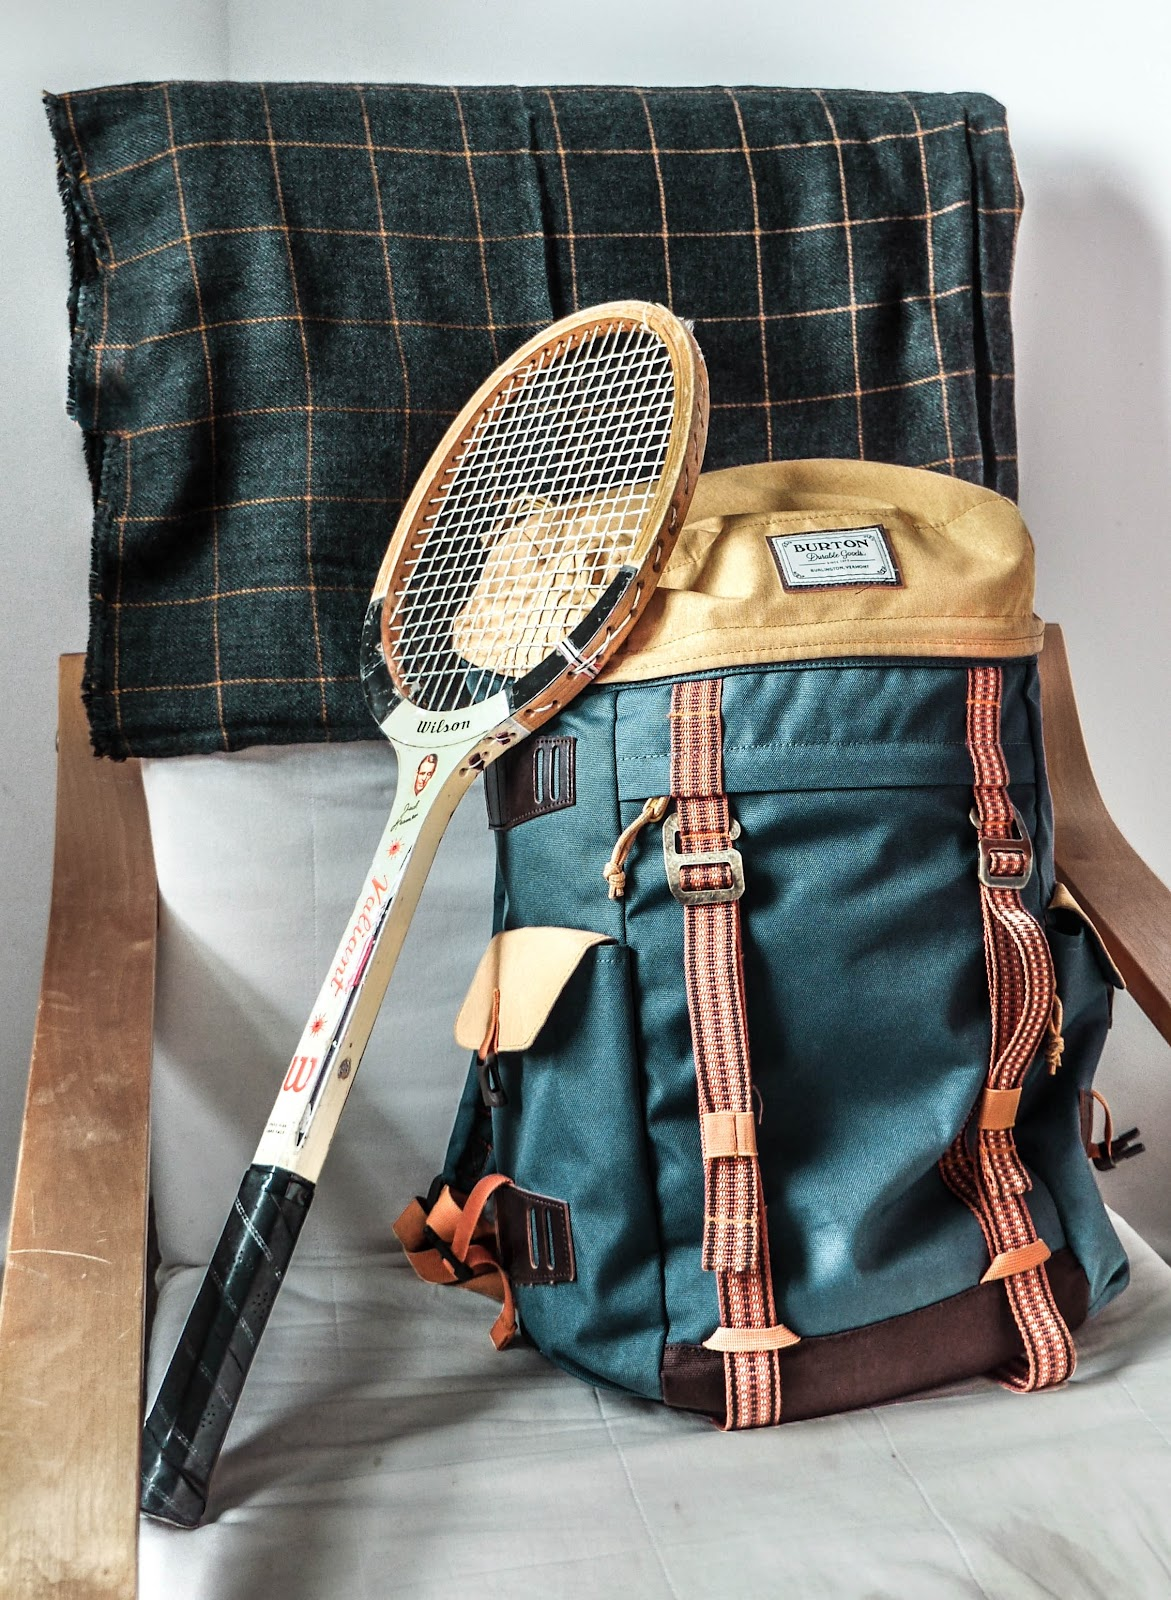 This is an older style Wilson badminton racket leaning up against a backpack that may hold badminton gear.  It may have been the best badminton backpack of it's era, but clearly doesn't fit today's styles.